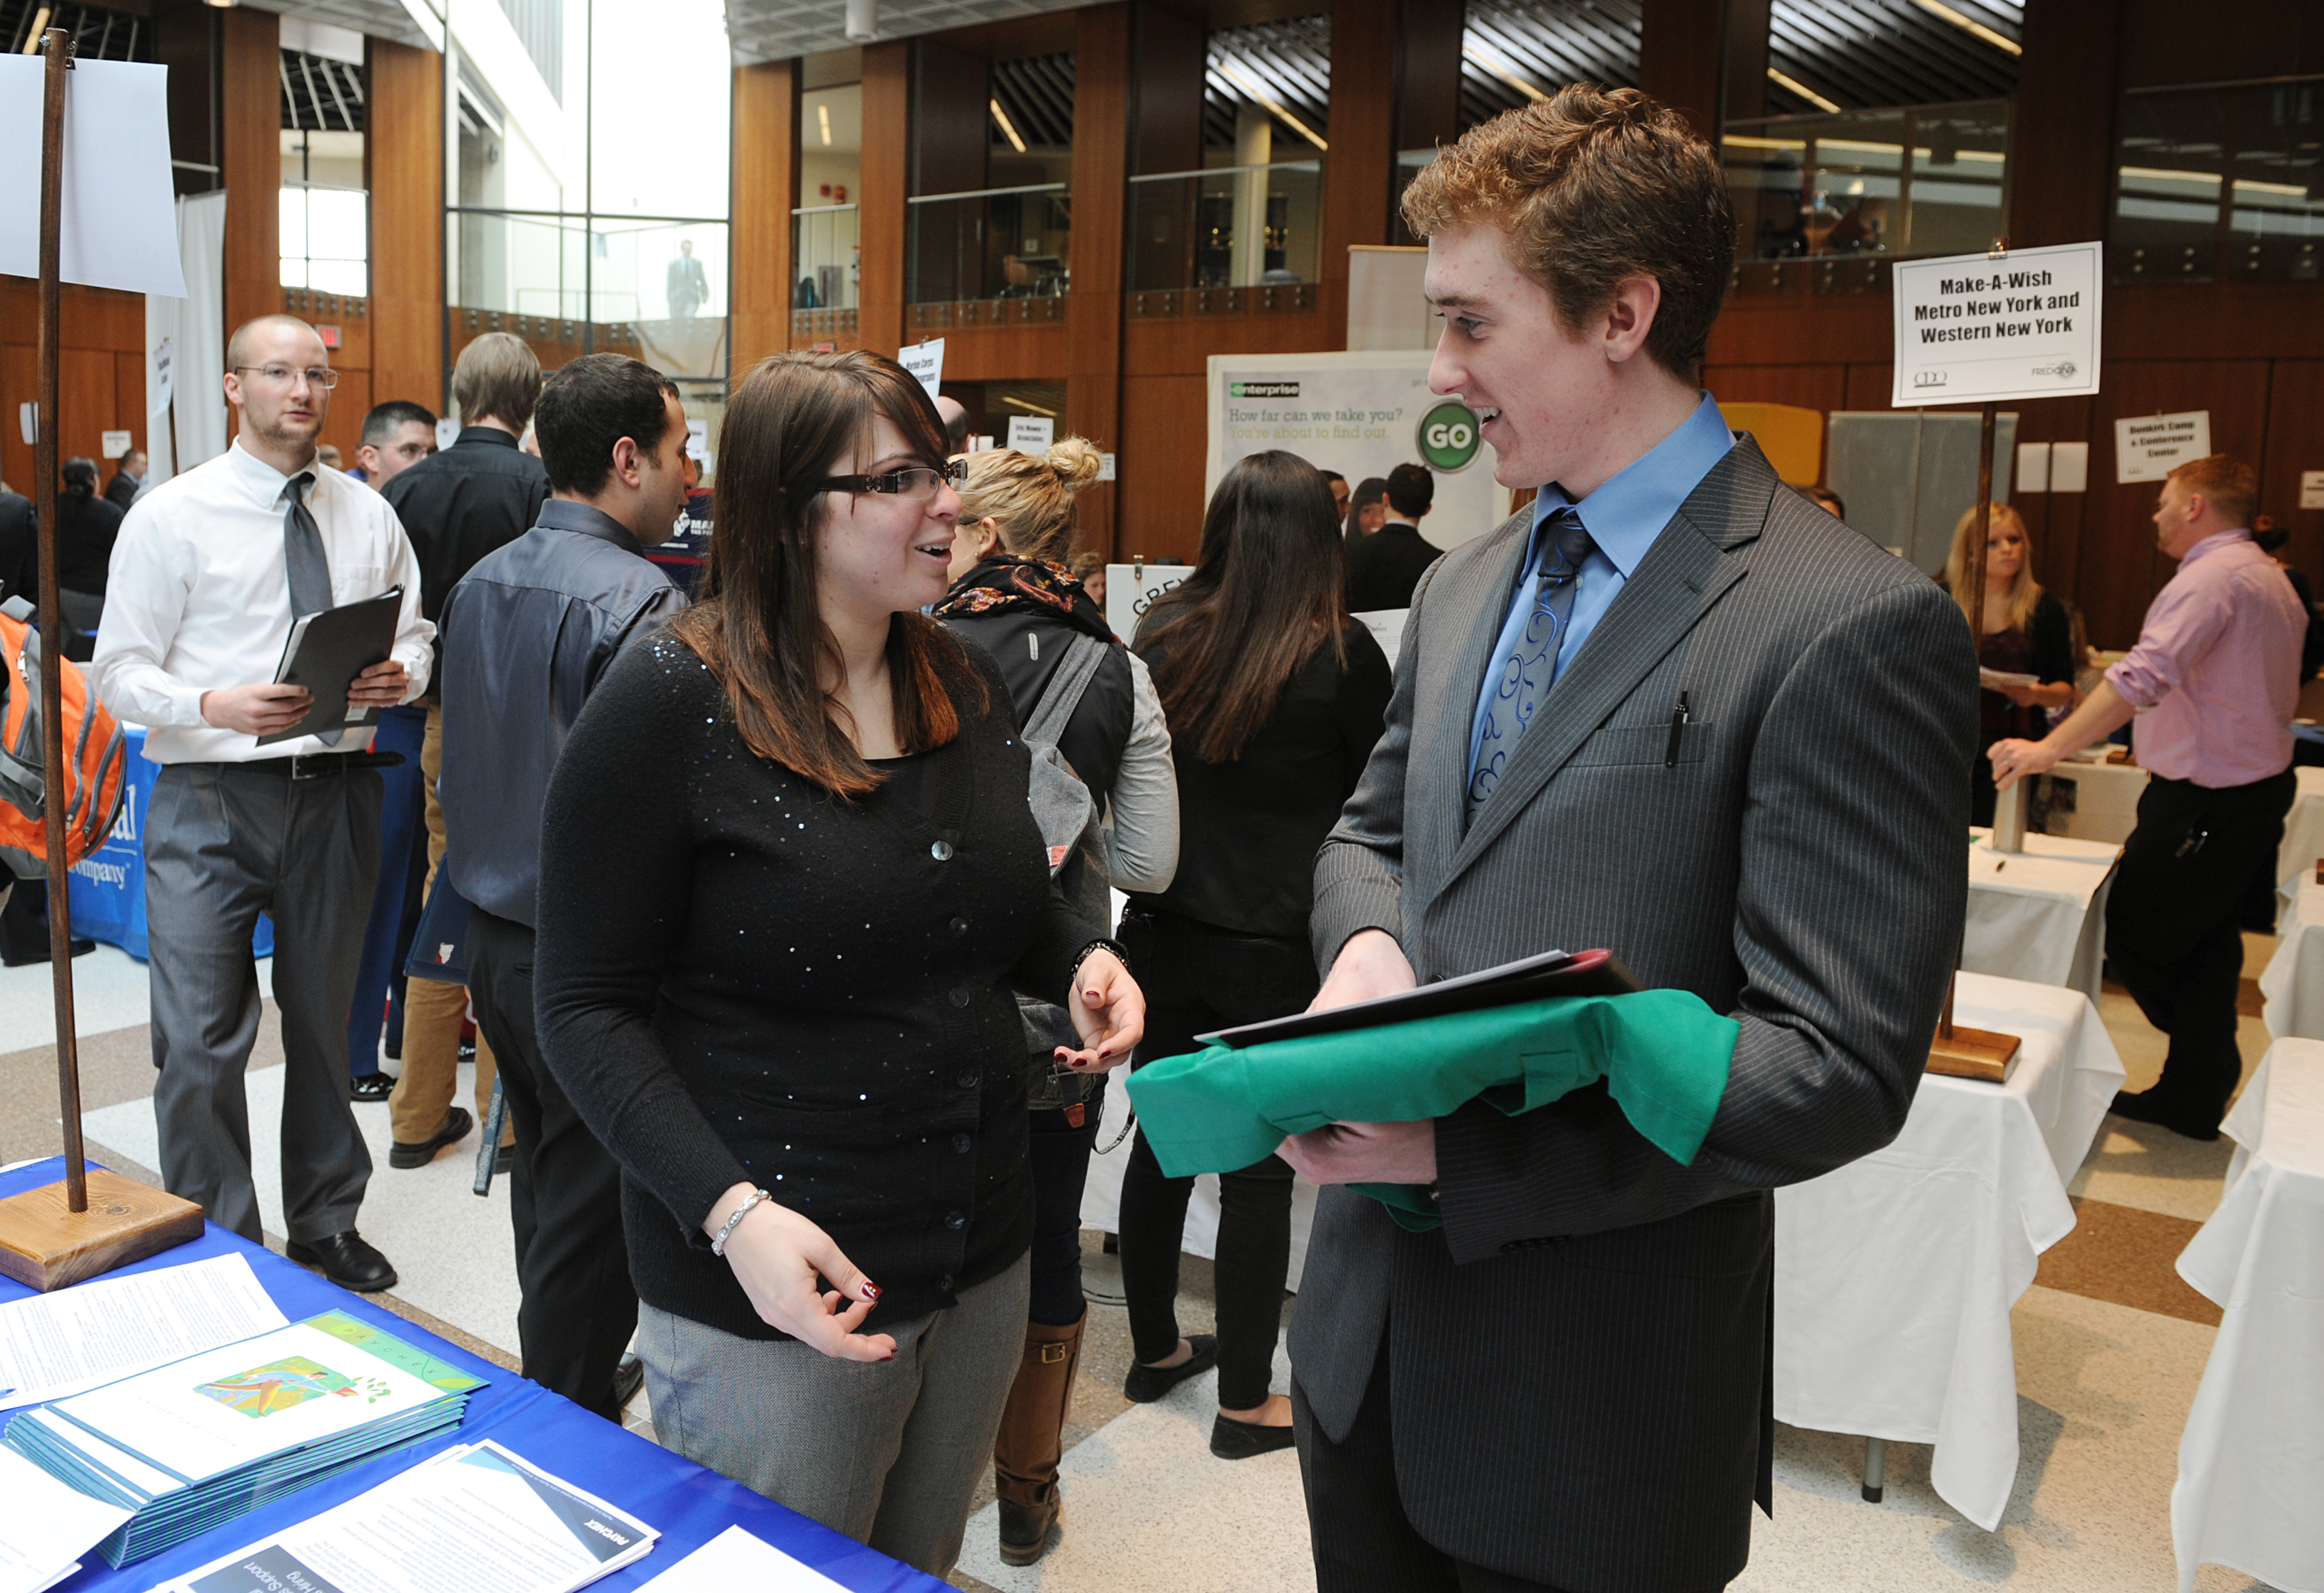 Our Job and Internship Expo is a great way to talk to students directly